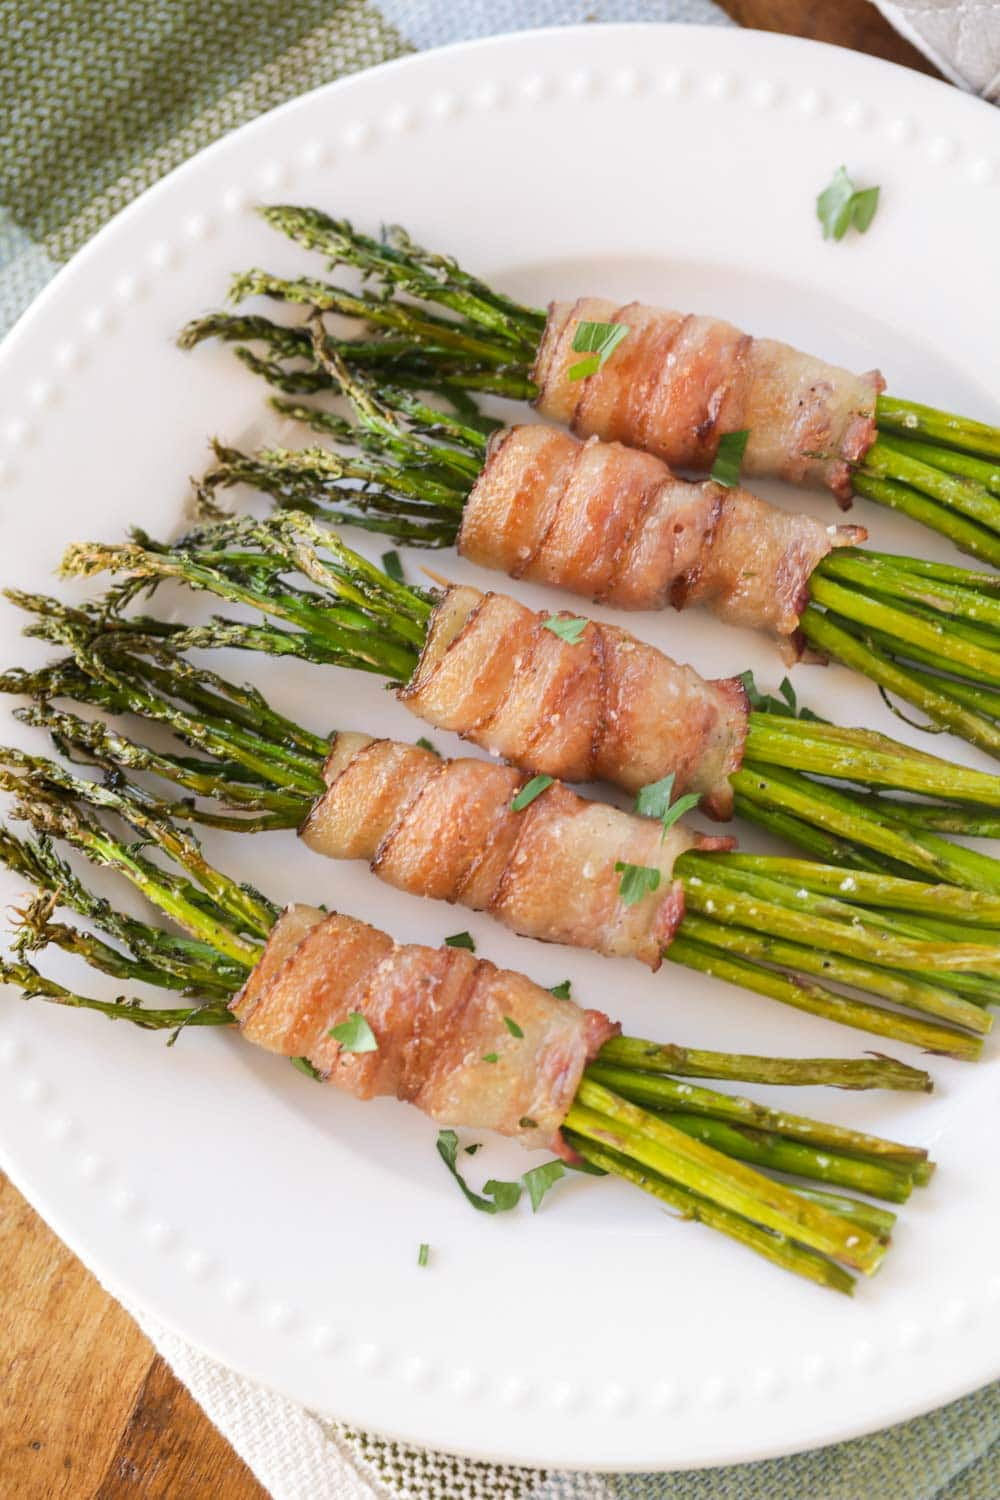 Baked bacon wrapped asparagus bundles on a white plate